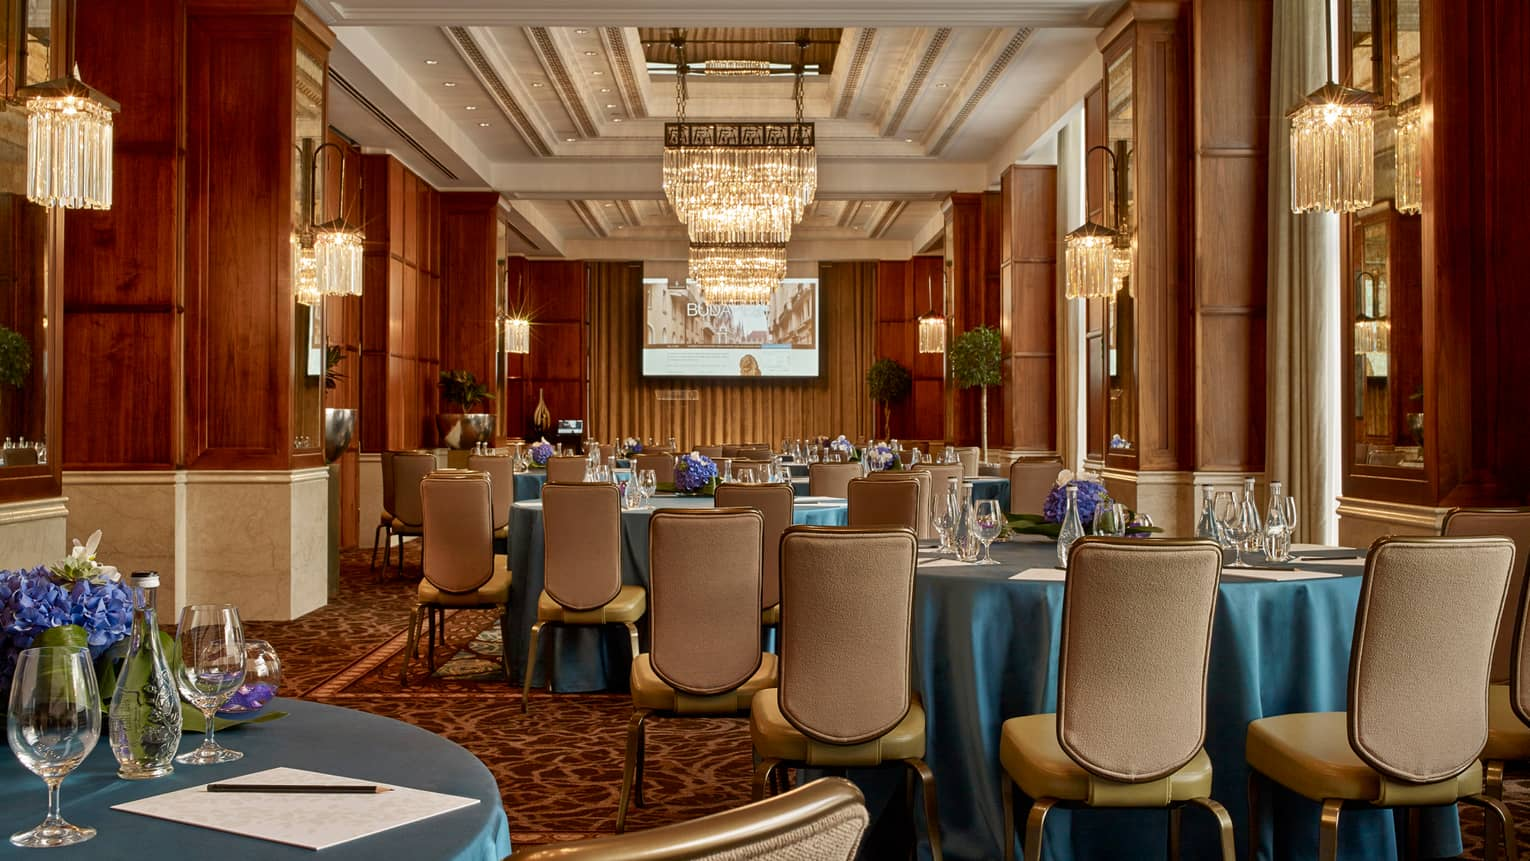 Gresham Room Art Nouveau-style ballroom tables with blue satin tablecloths, leather dining chairs, chandeliers